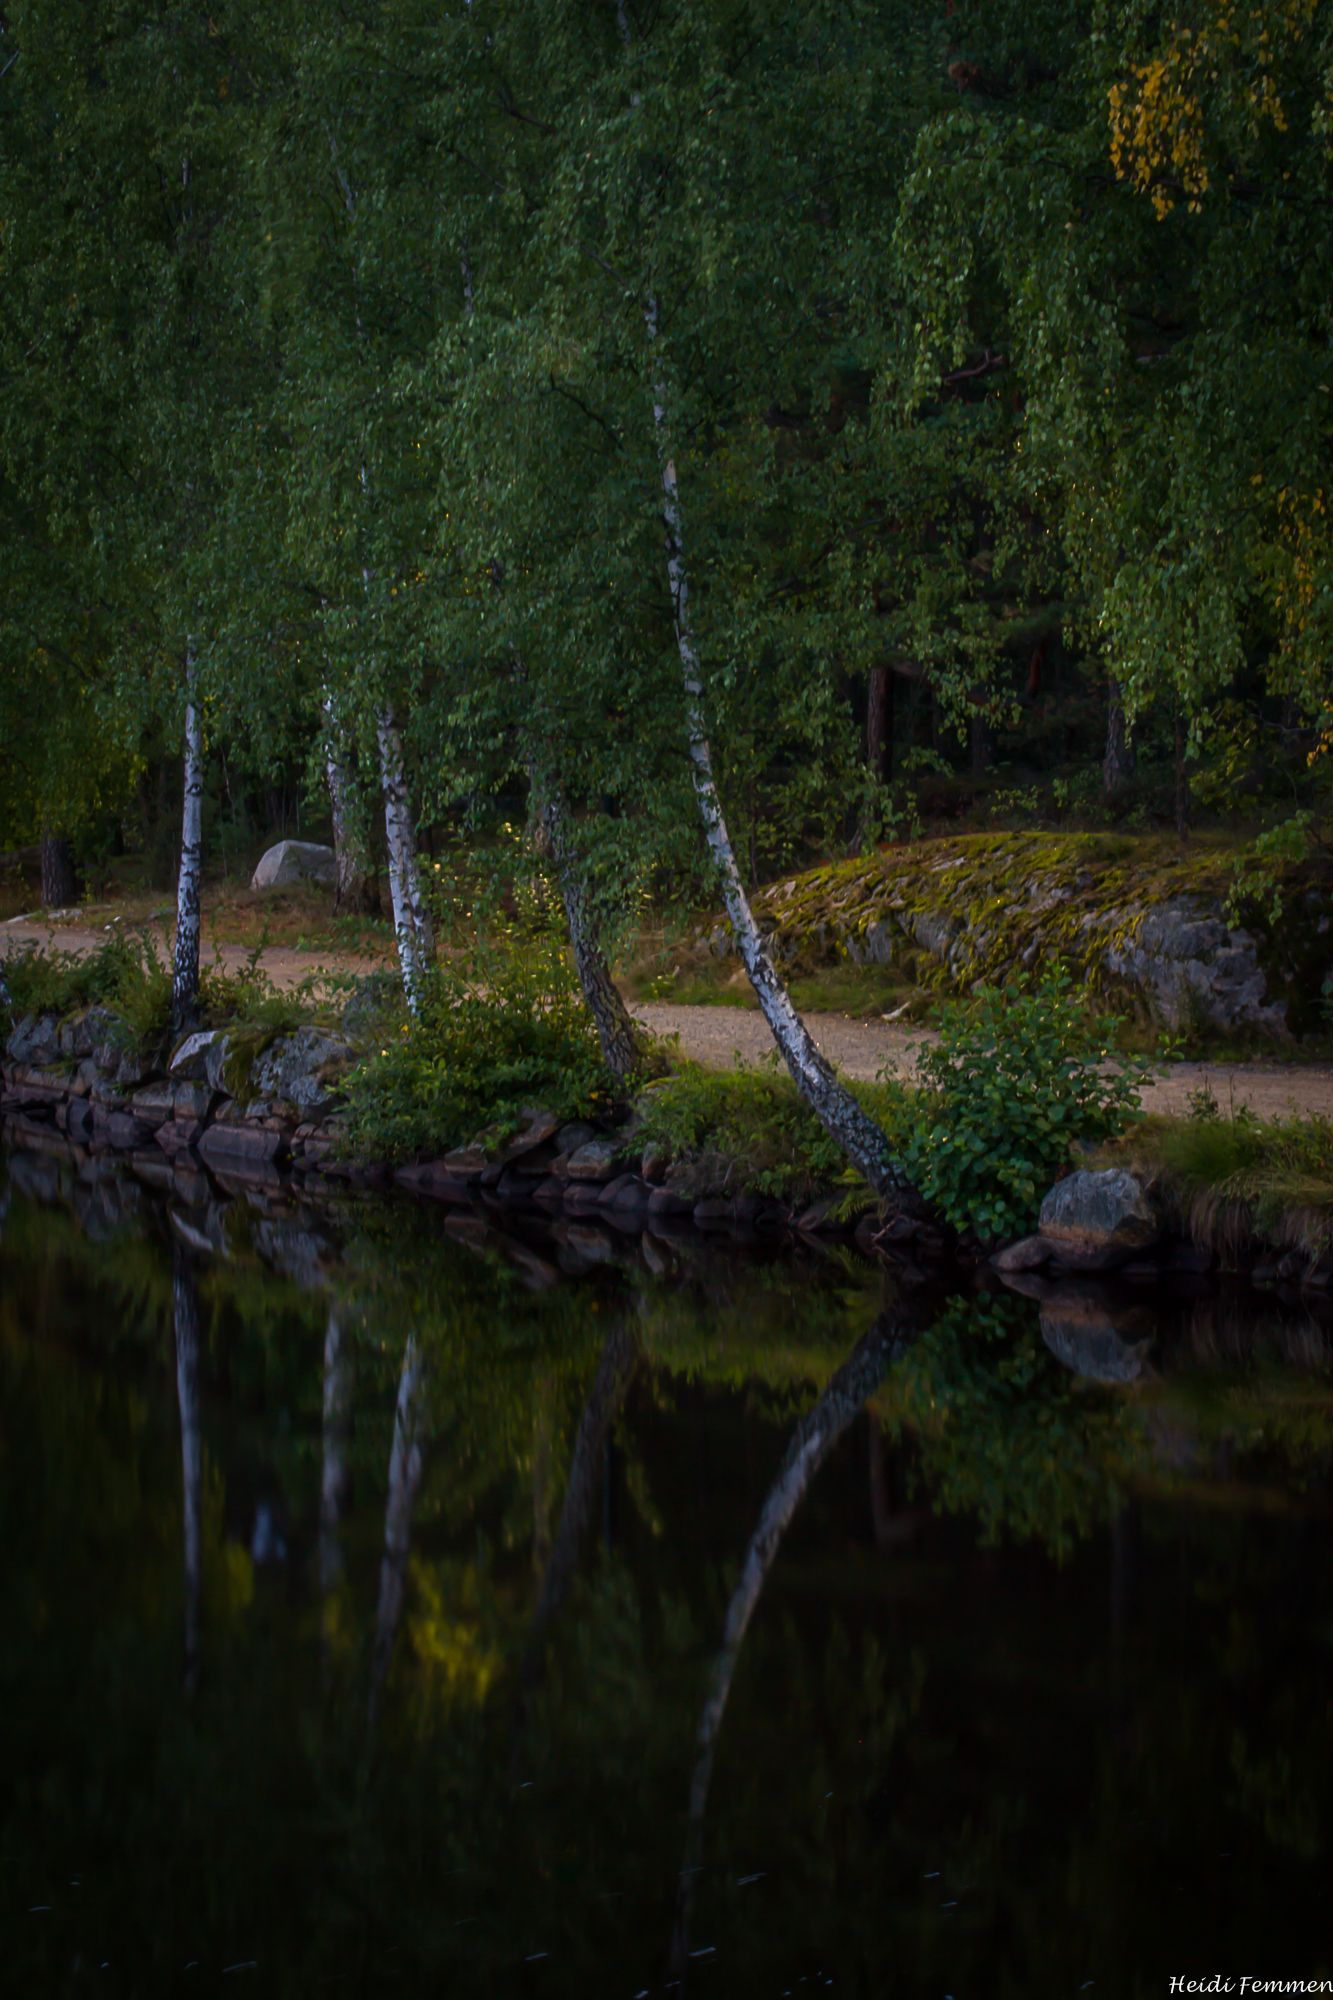 The trees are reflekted in the pond. Fredrikstad, Norway Copyright: Heidi Femmen